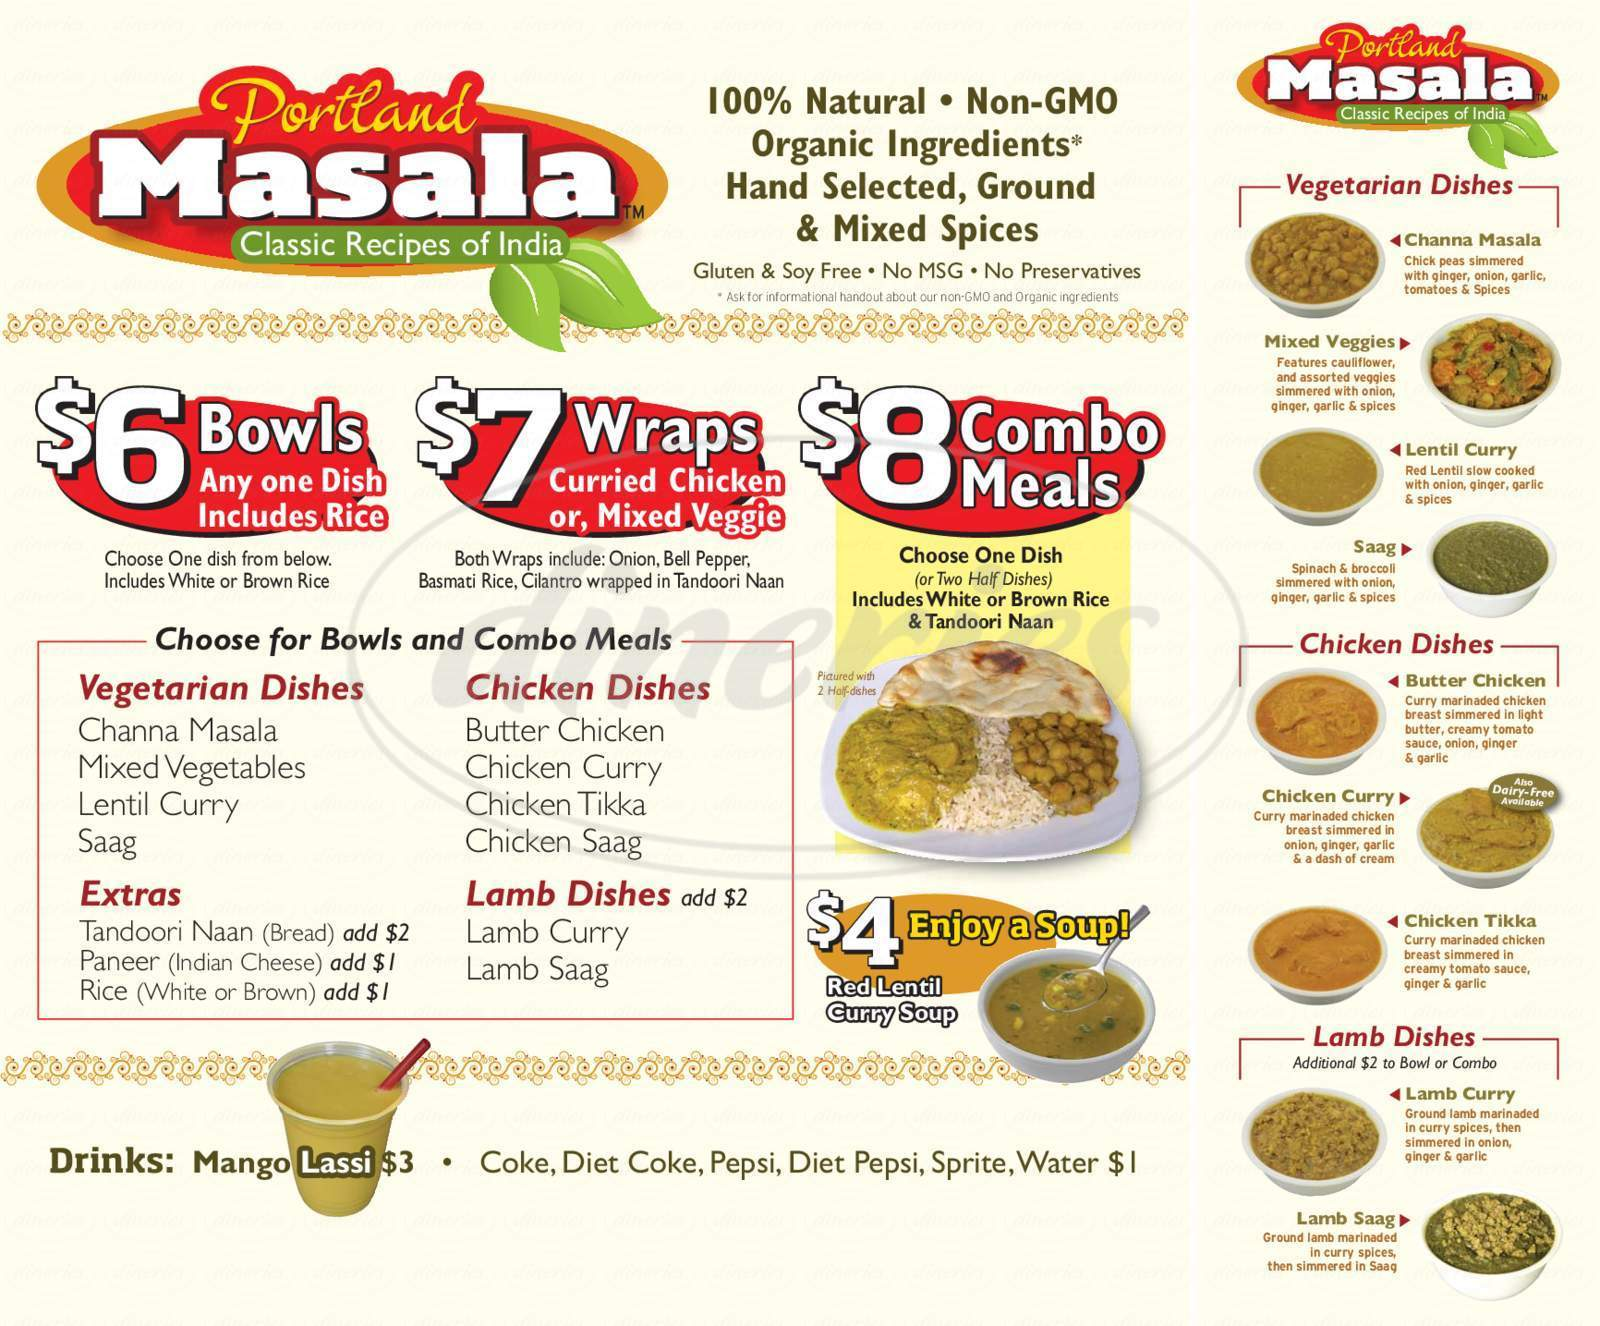 menu for Portland Masala